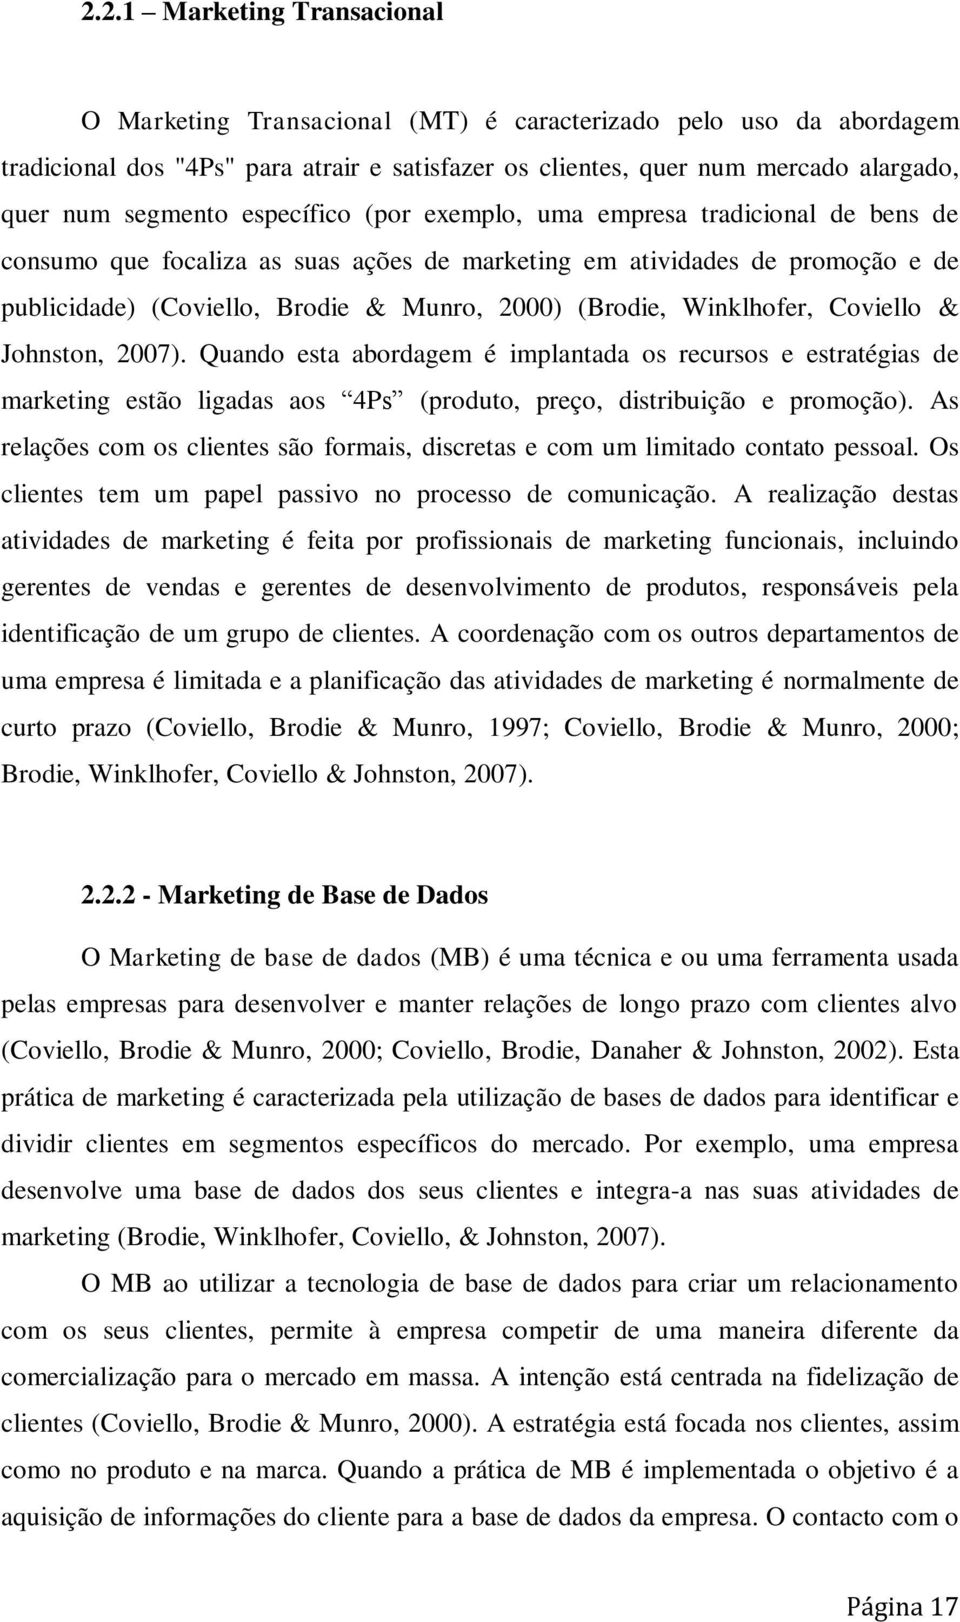 (Brodie, Winklhofer, Coviello & Johnston, 2007). Quando esta abordagem é implantada os recursos e estratégias de marketing estão ligadas aos 4Ps (produto, preço, distribuição e promoção).